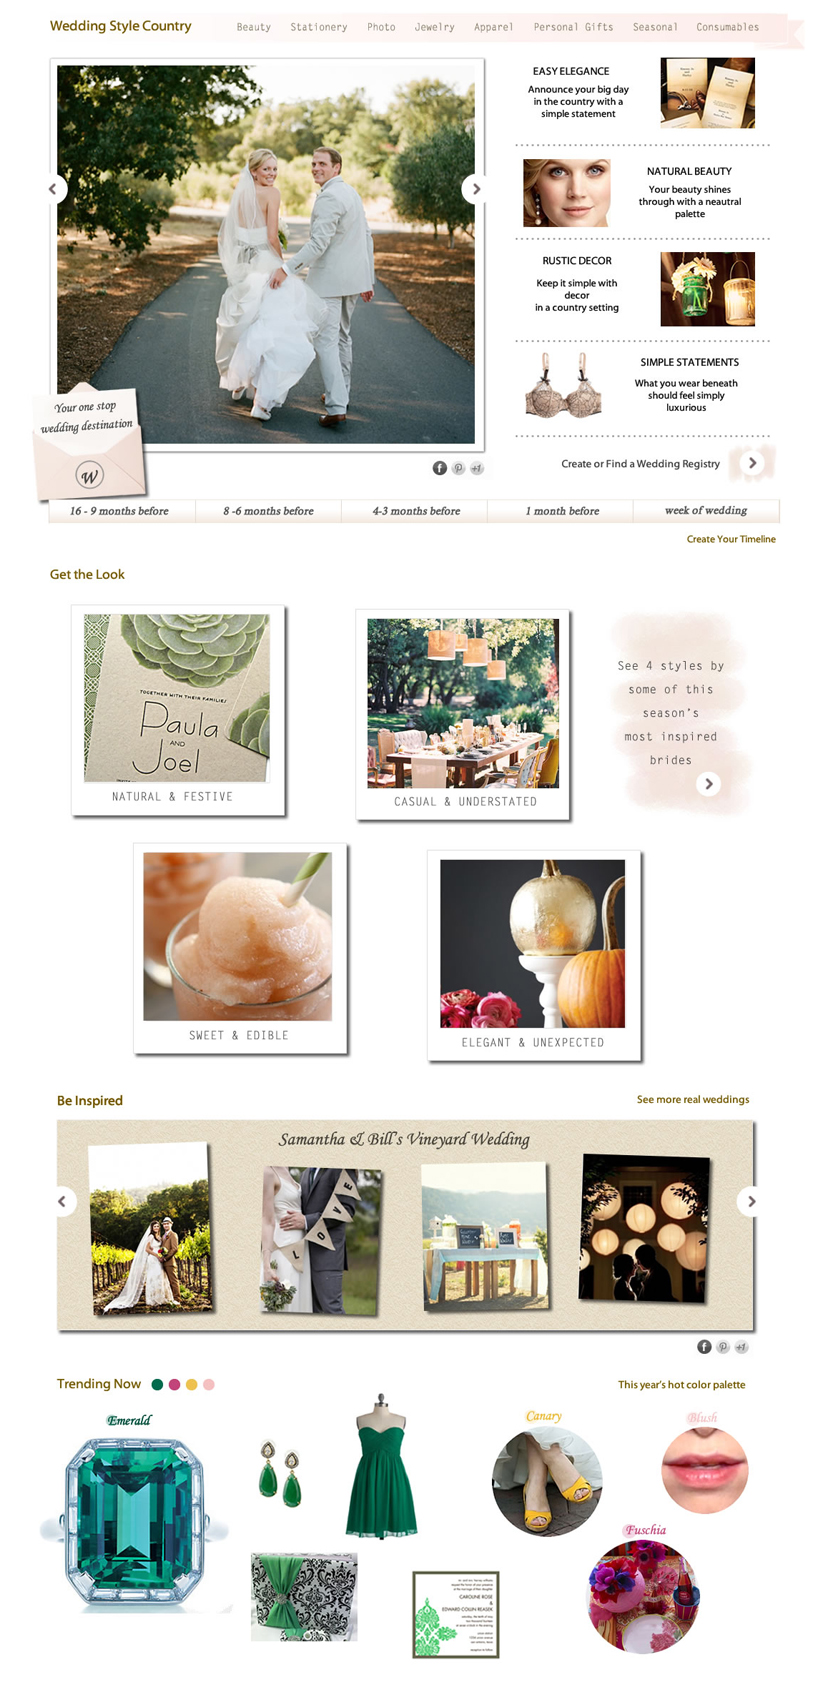 Wedding Channel Home Page: Concept A